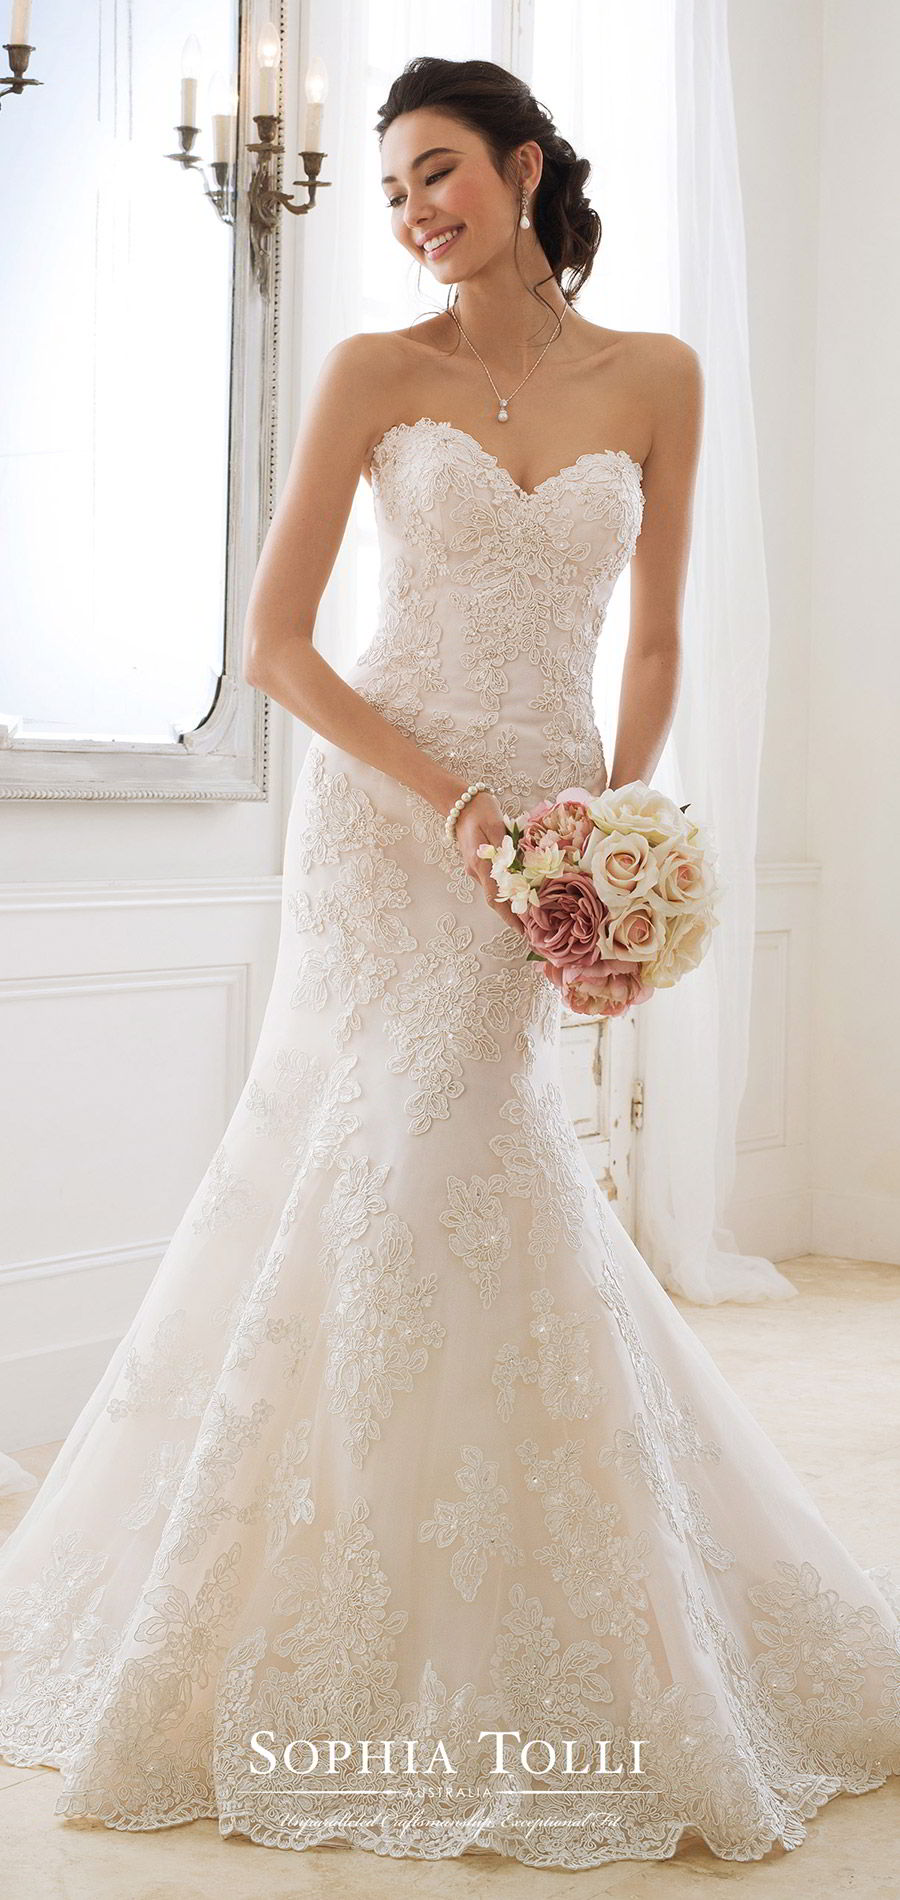 sophia tolli spring 2018 mon cheri bridals strapless sweetheart beaded lace fit flare wedding dress (y11870 alexia) fv corset back court train romantic